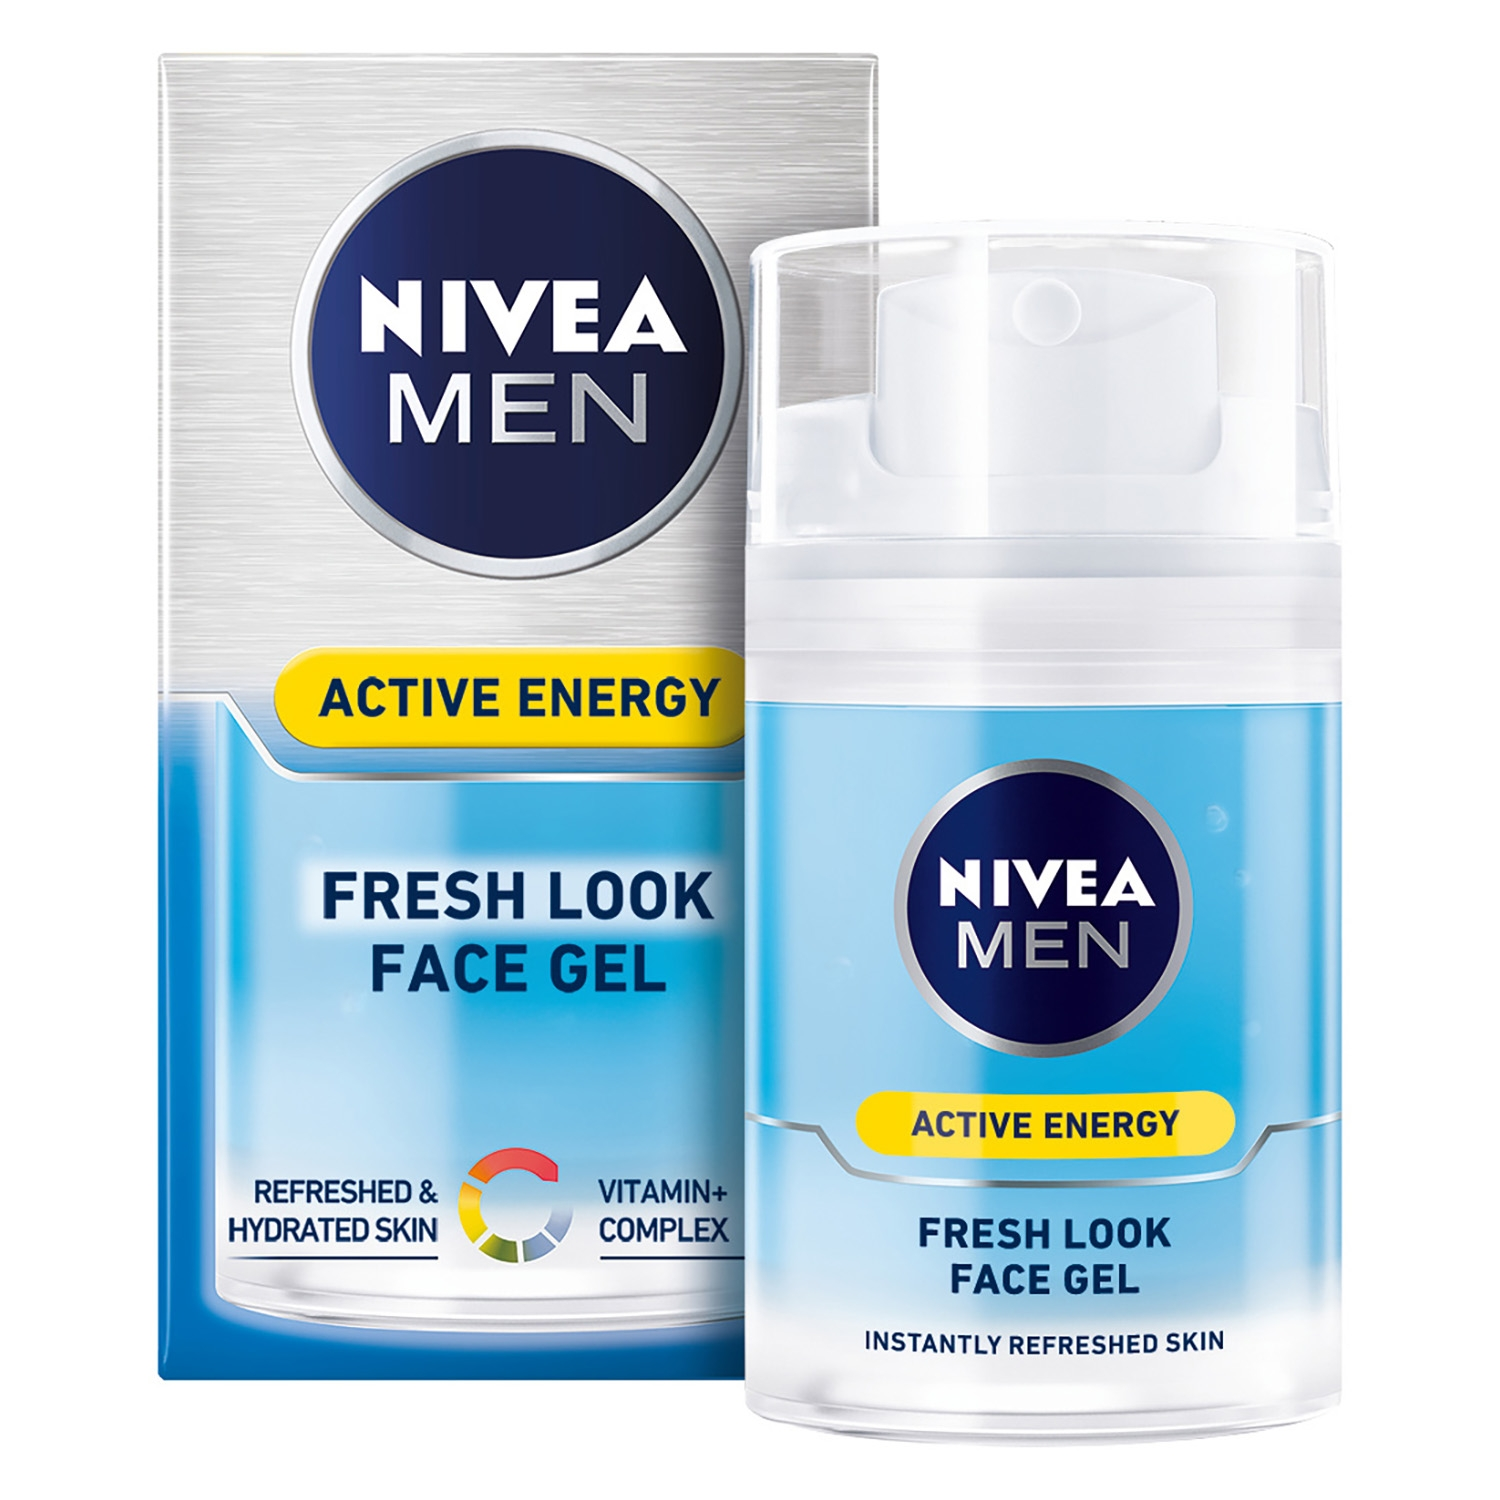 active energy gel facial revitalizante nivea men carrefour supermercado compra online. Black Bedroom Furniture Sets. Home Design Ideas